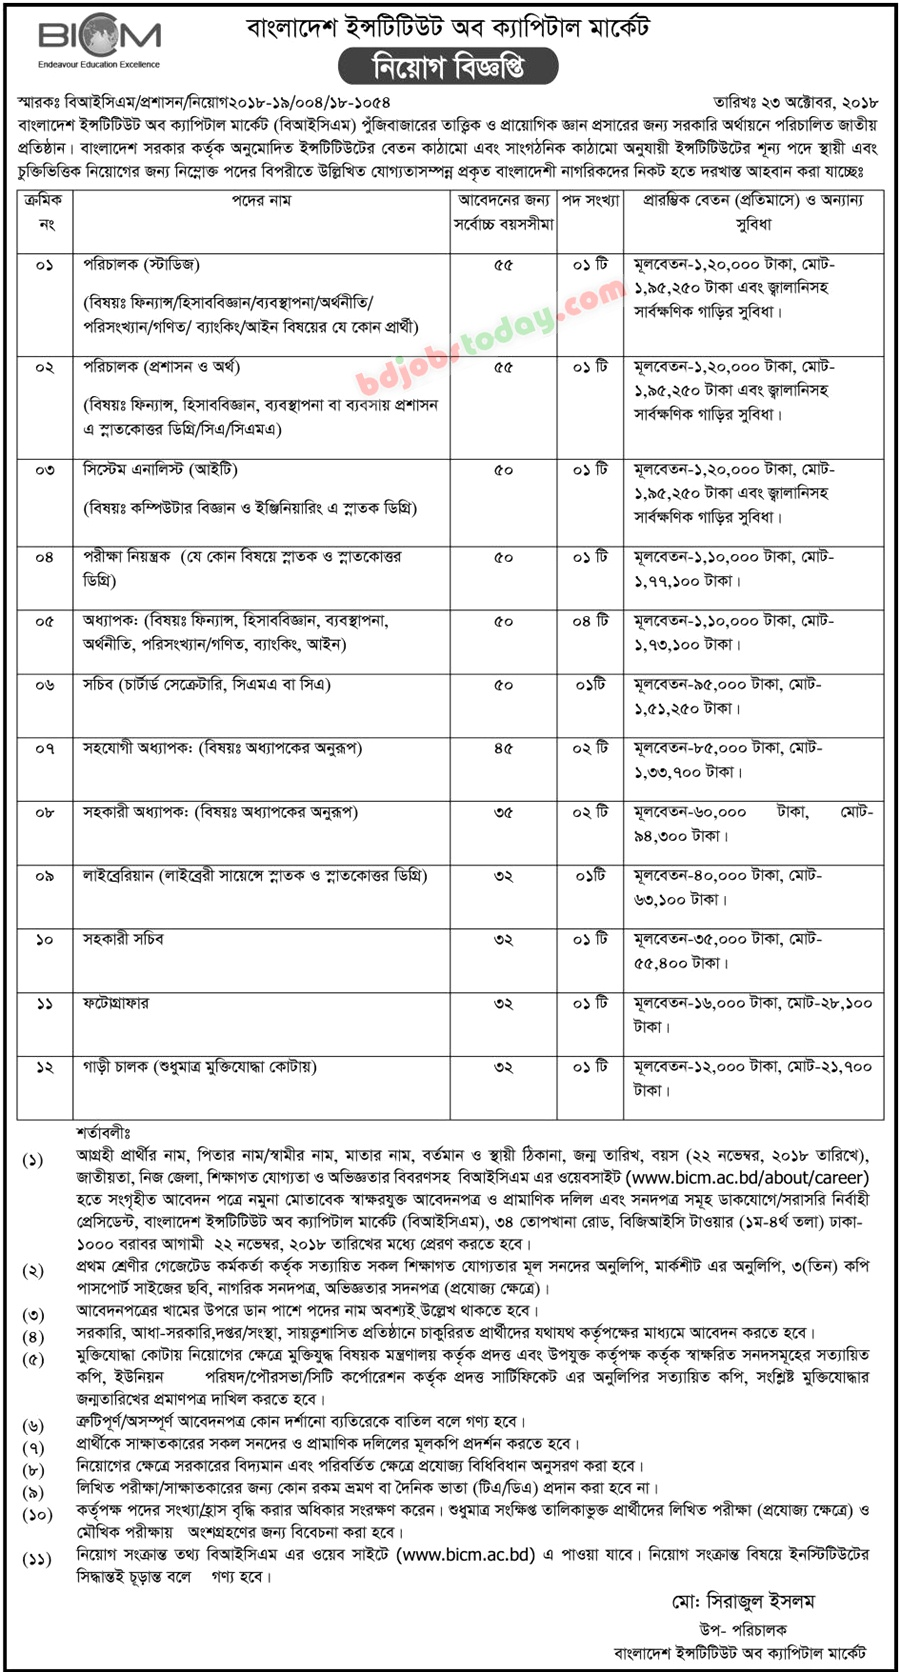 Bangladesh Institute of Capital Market jobs